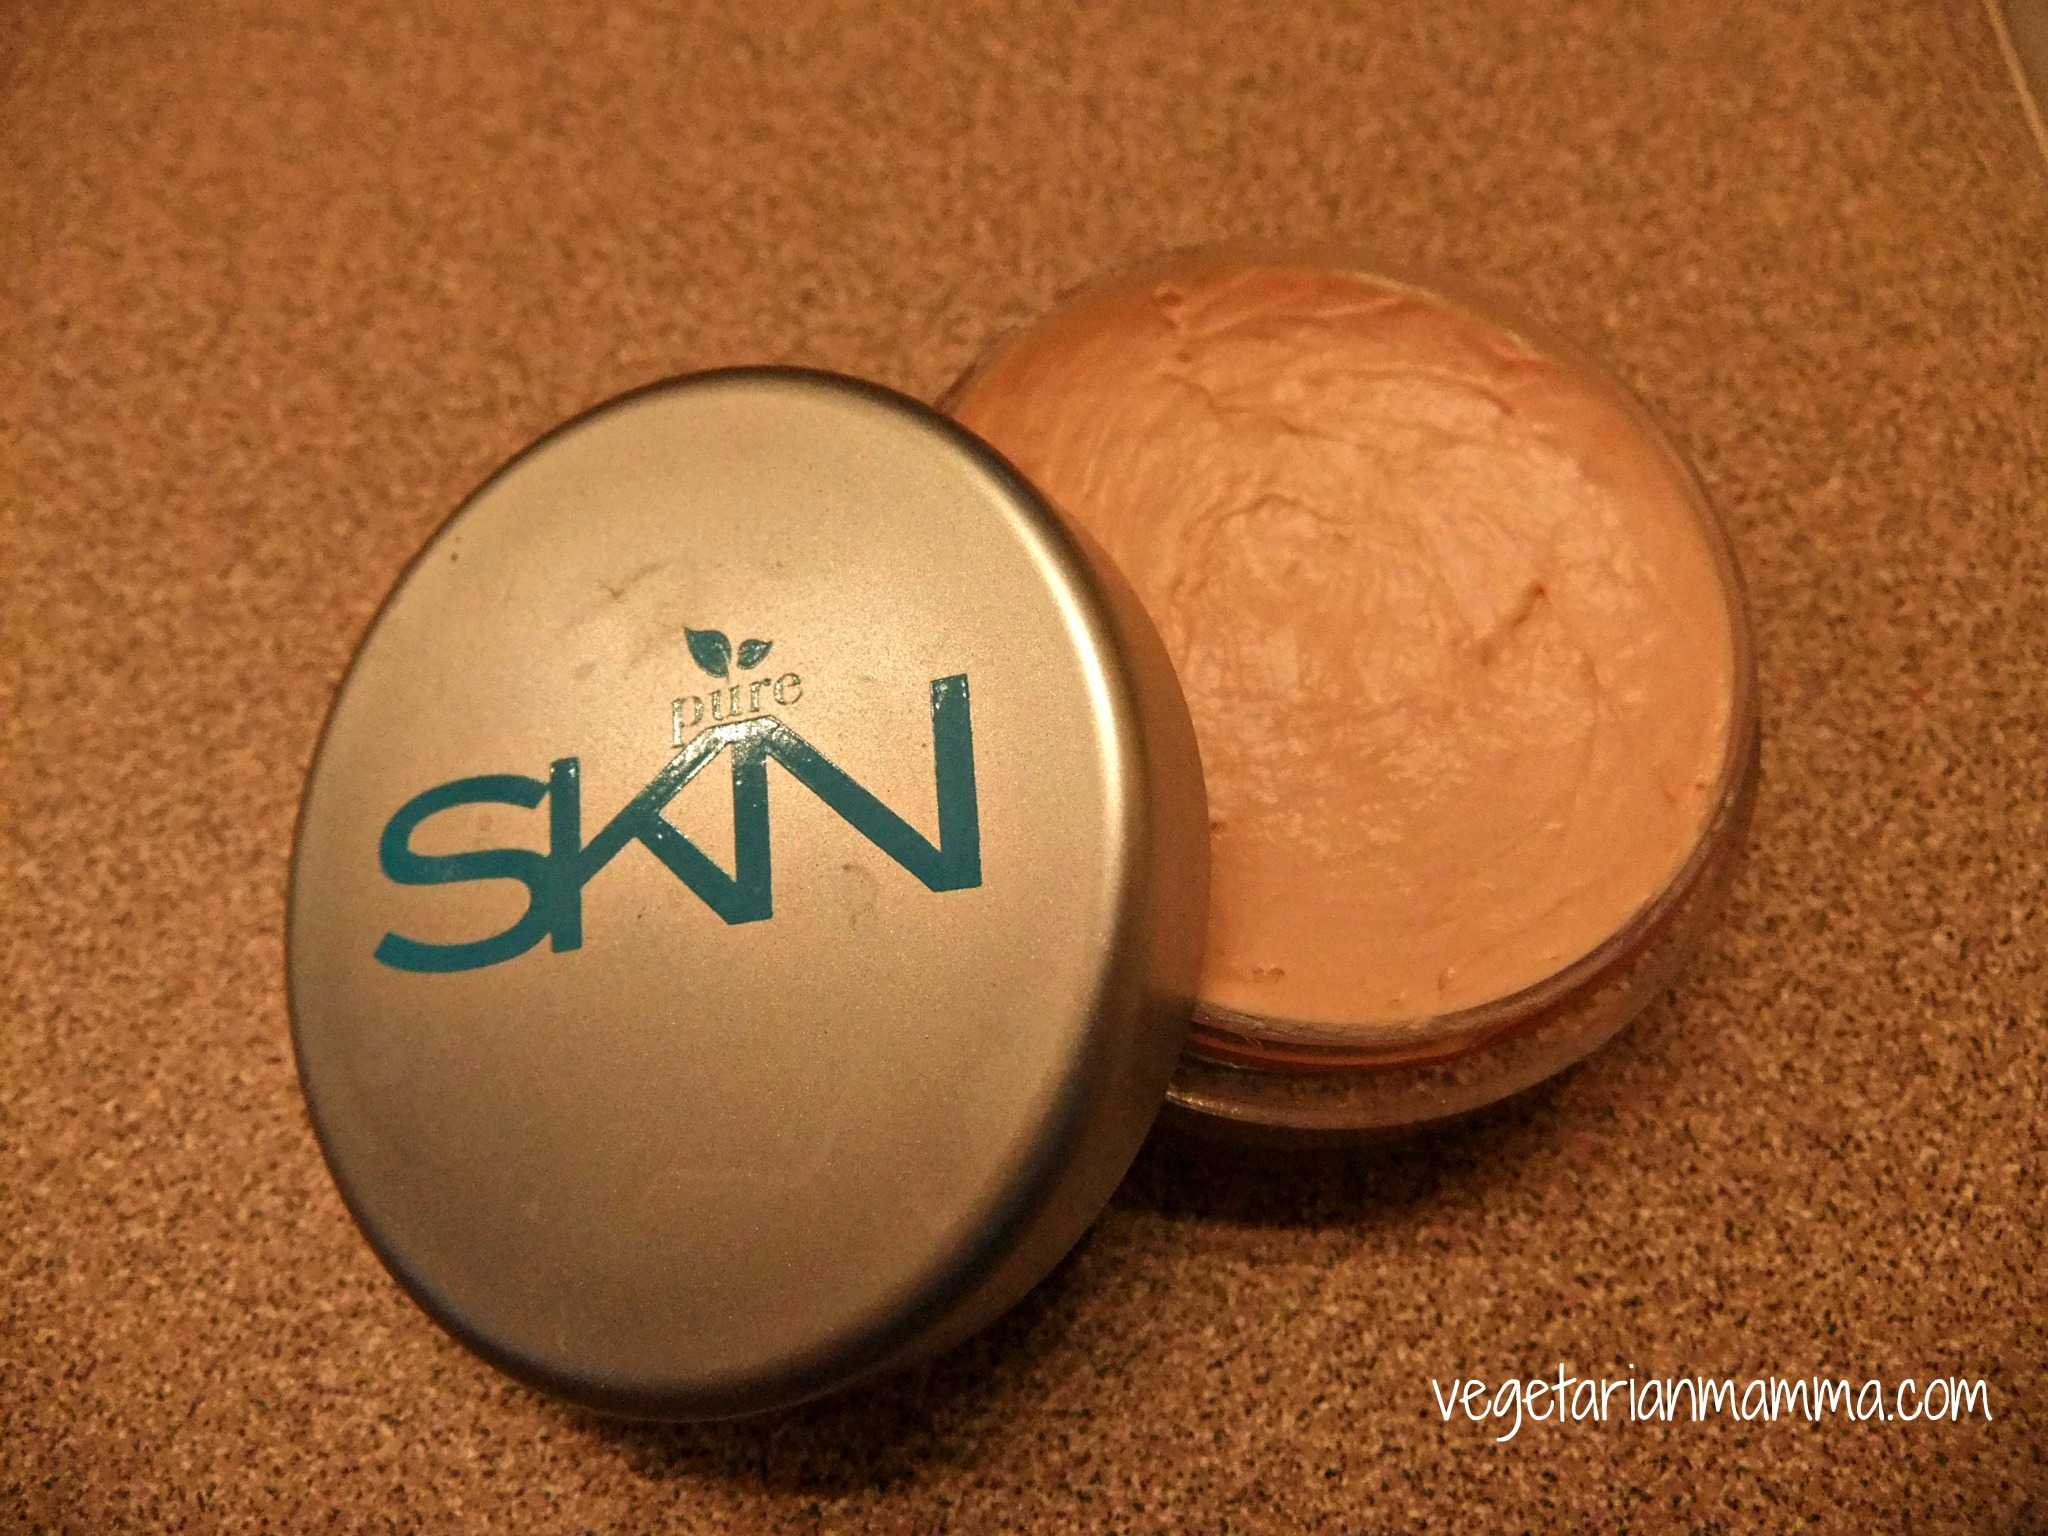 Gluten Free Review: Pure SKN Clean Cosmetics and Skin Care